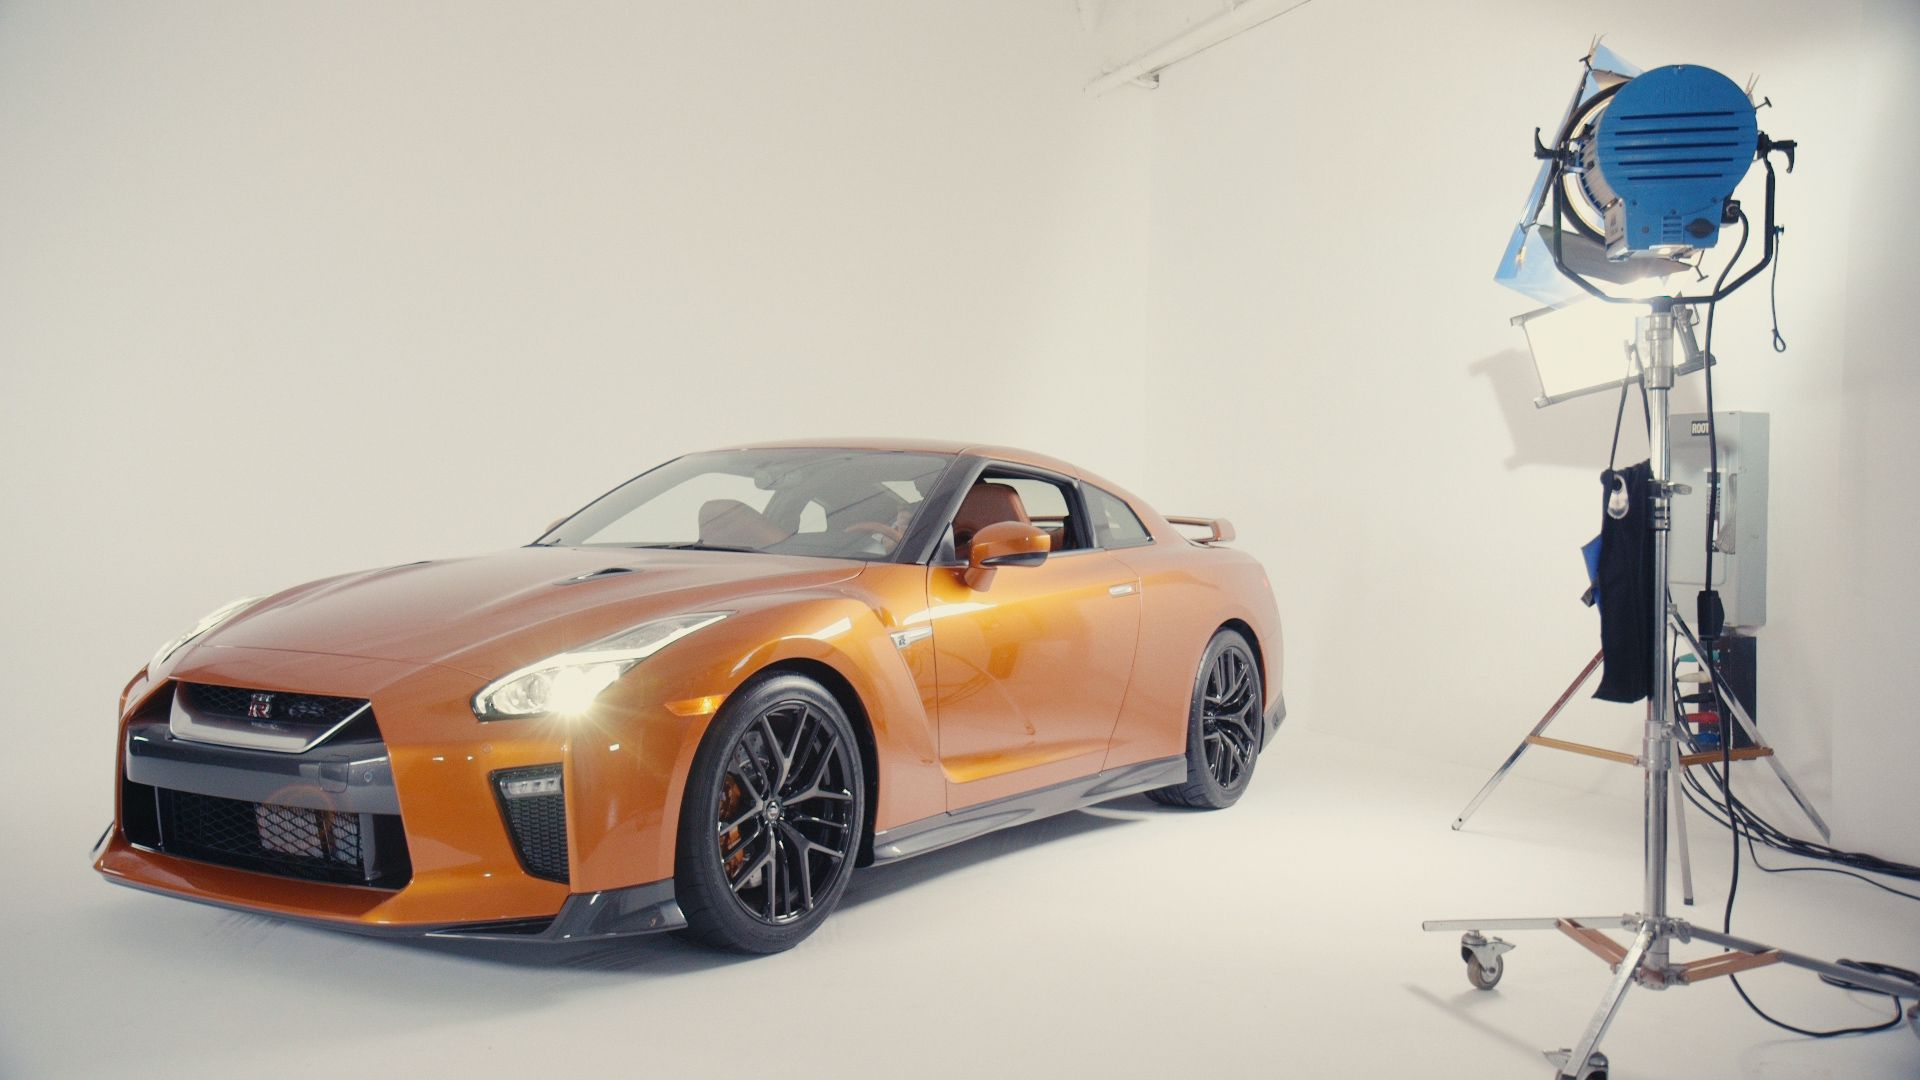 The 2017 Nissan GT R is a more civilized more powerful Godzilla